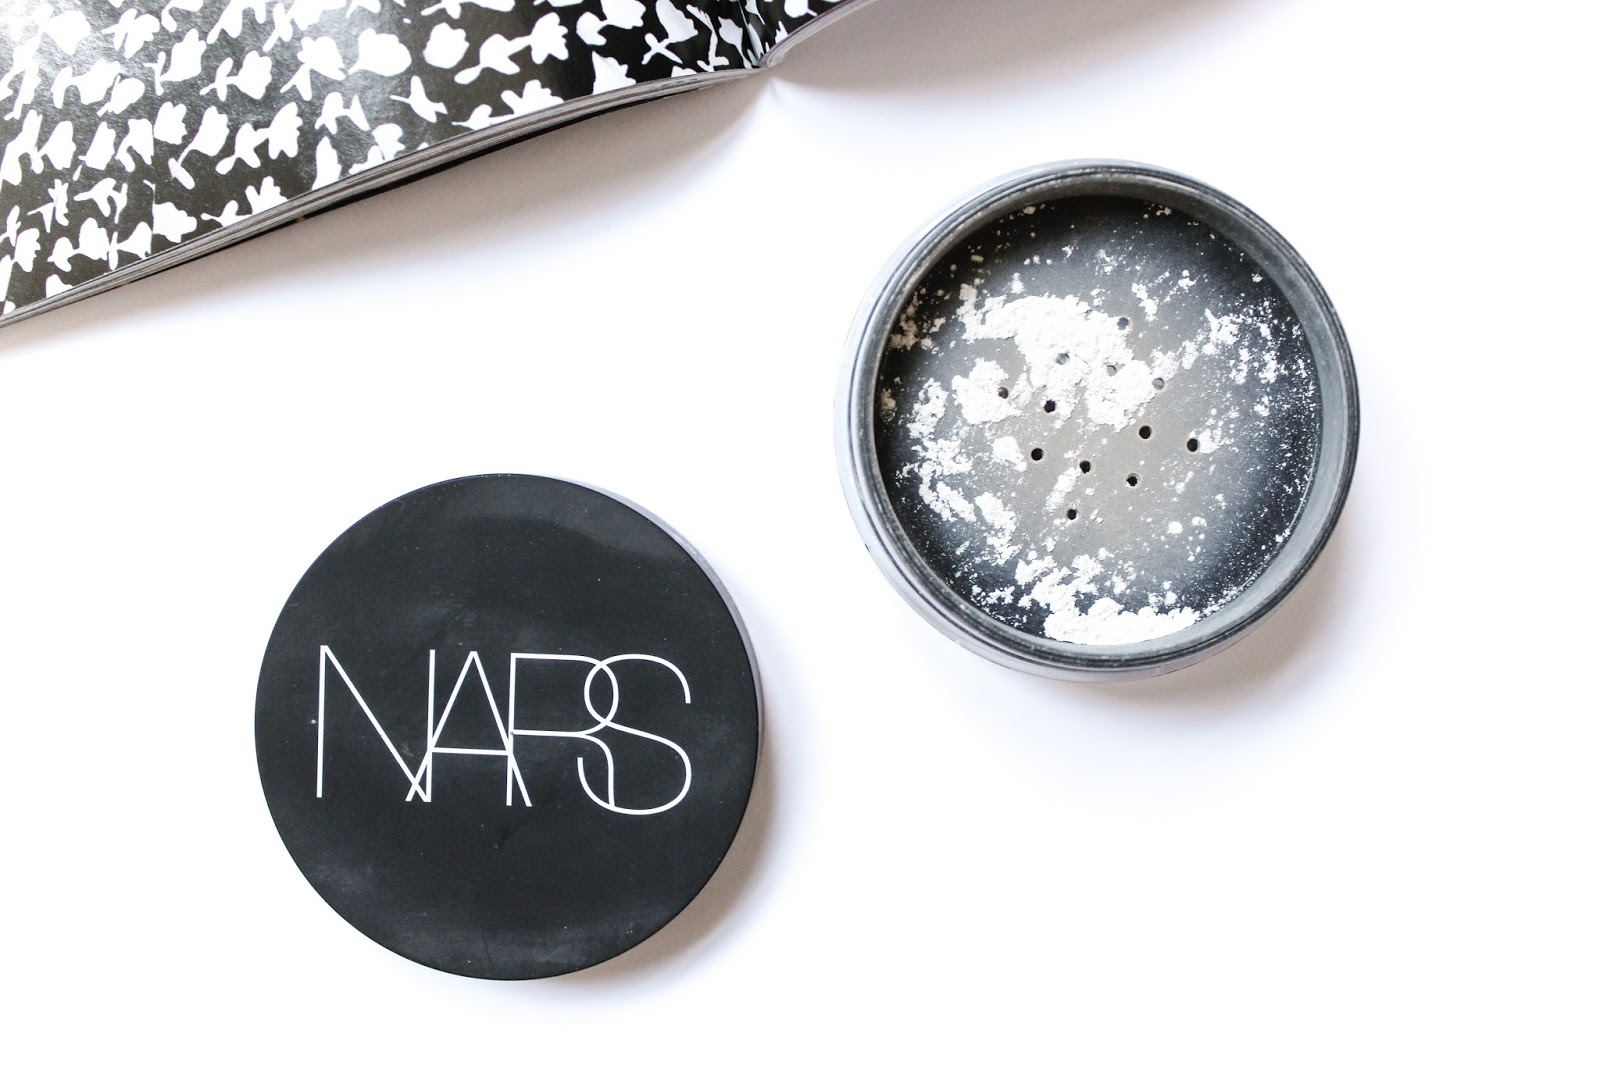 NARS 173883 Translucent Light Reflecting Loose Setting Powder 10 g-0.35 oz uploaded by Maria P.